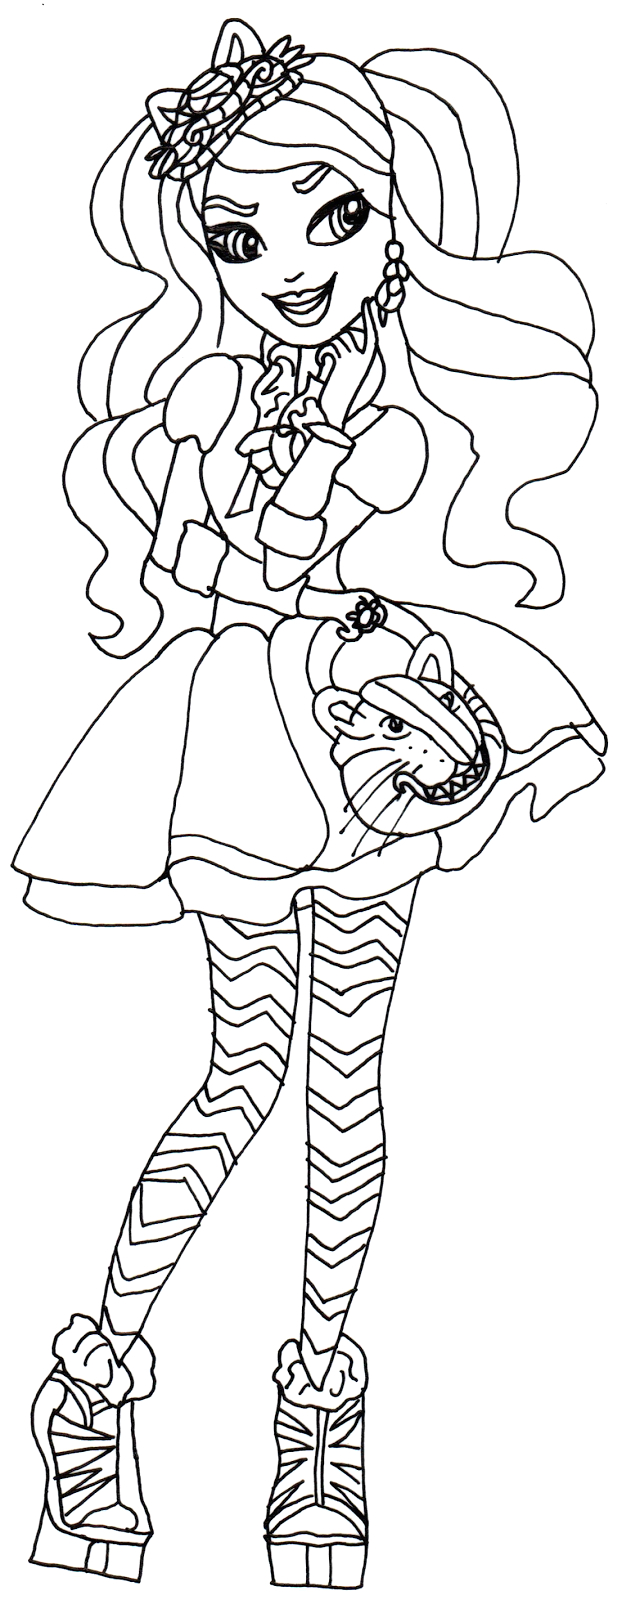 Free Printable Ever after High Coloring Pages Ever after High Coloring Pages to and Print for Free